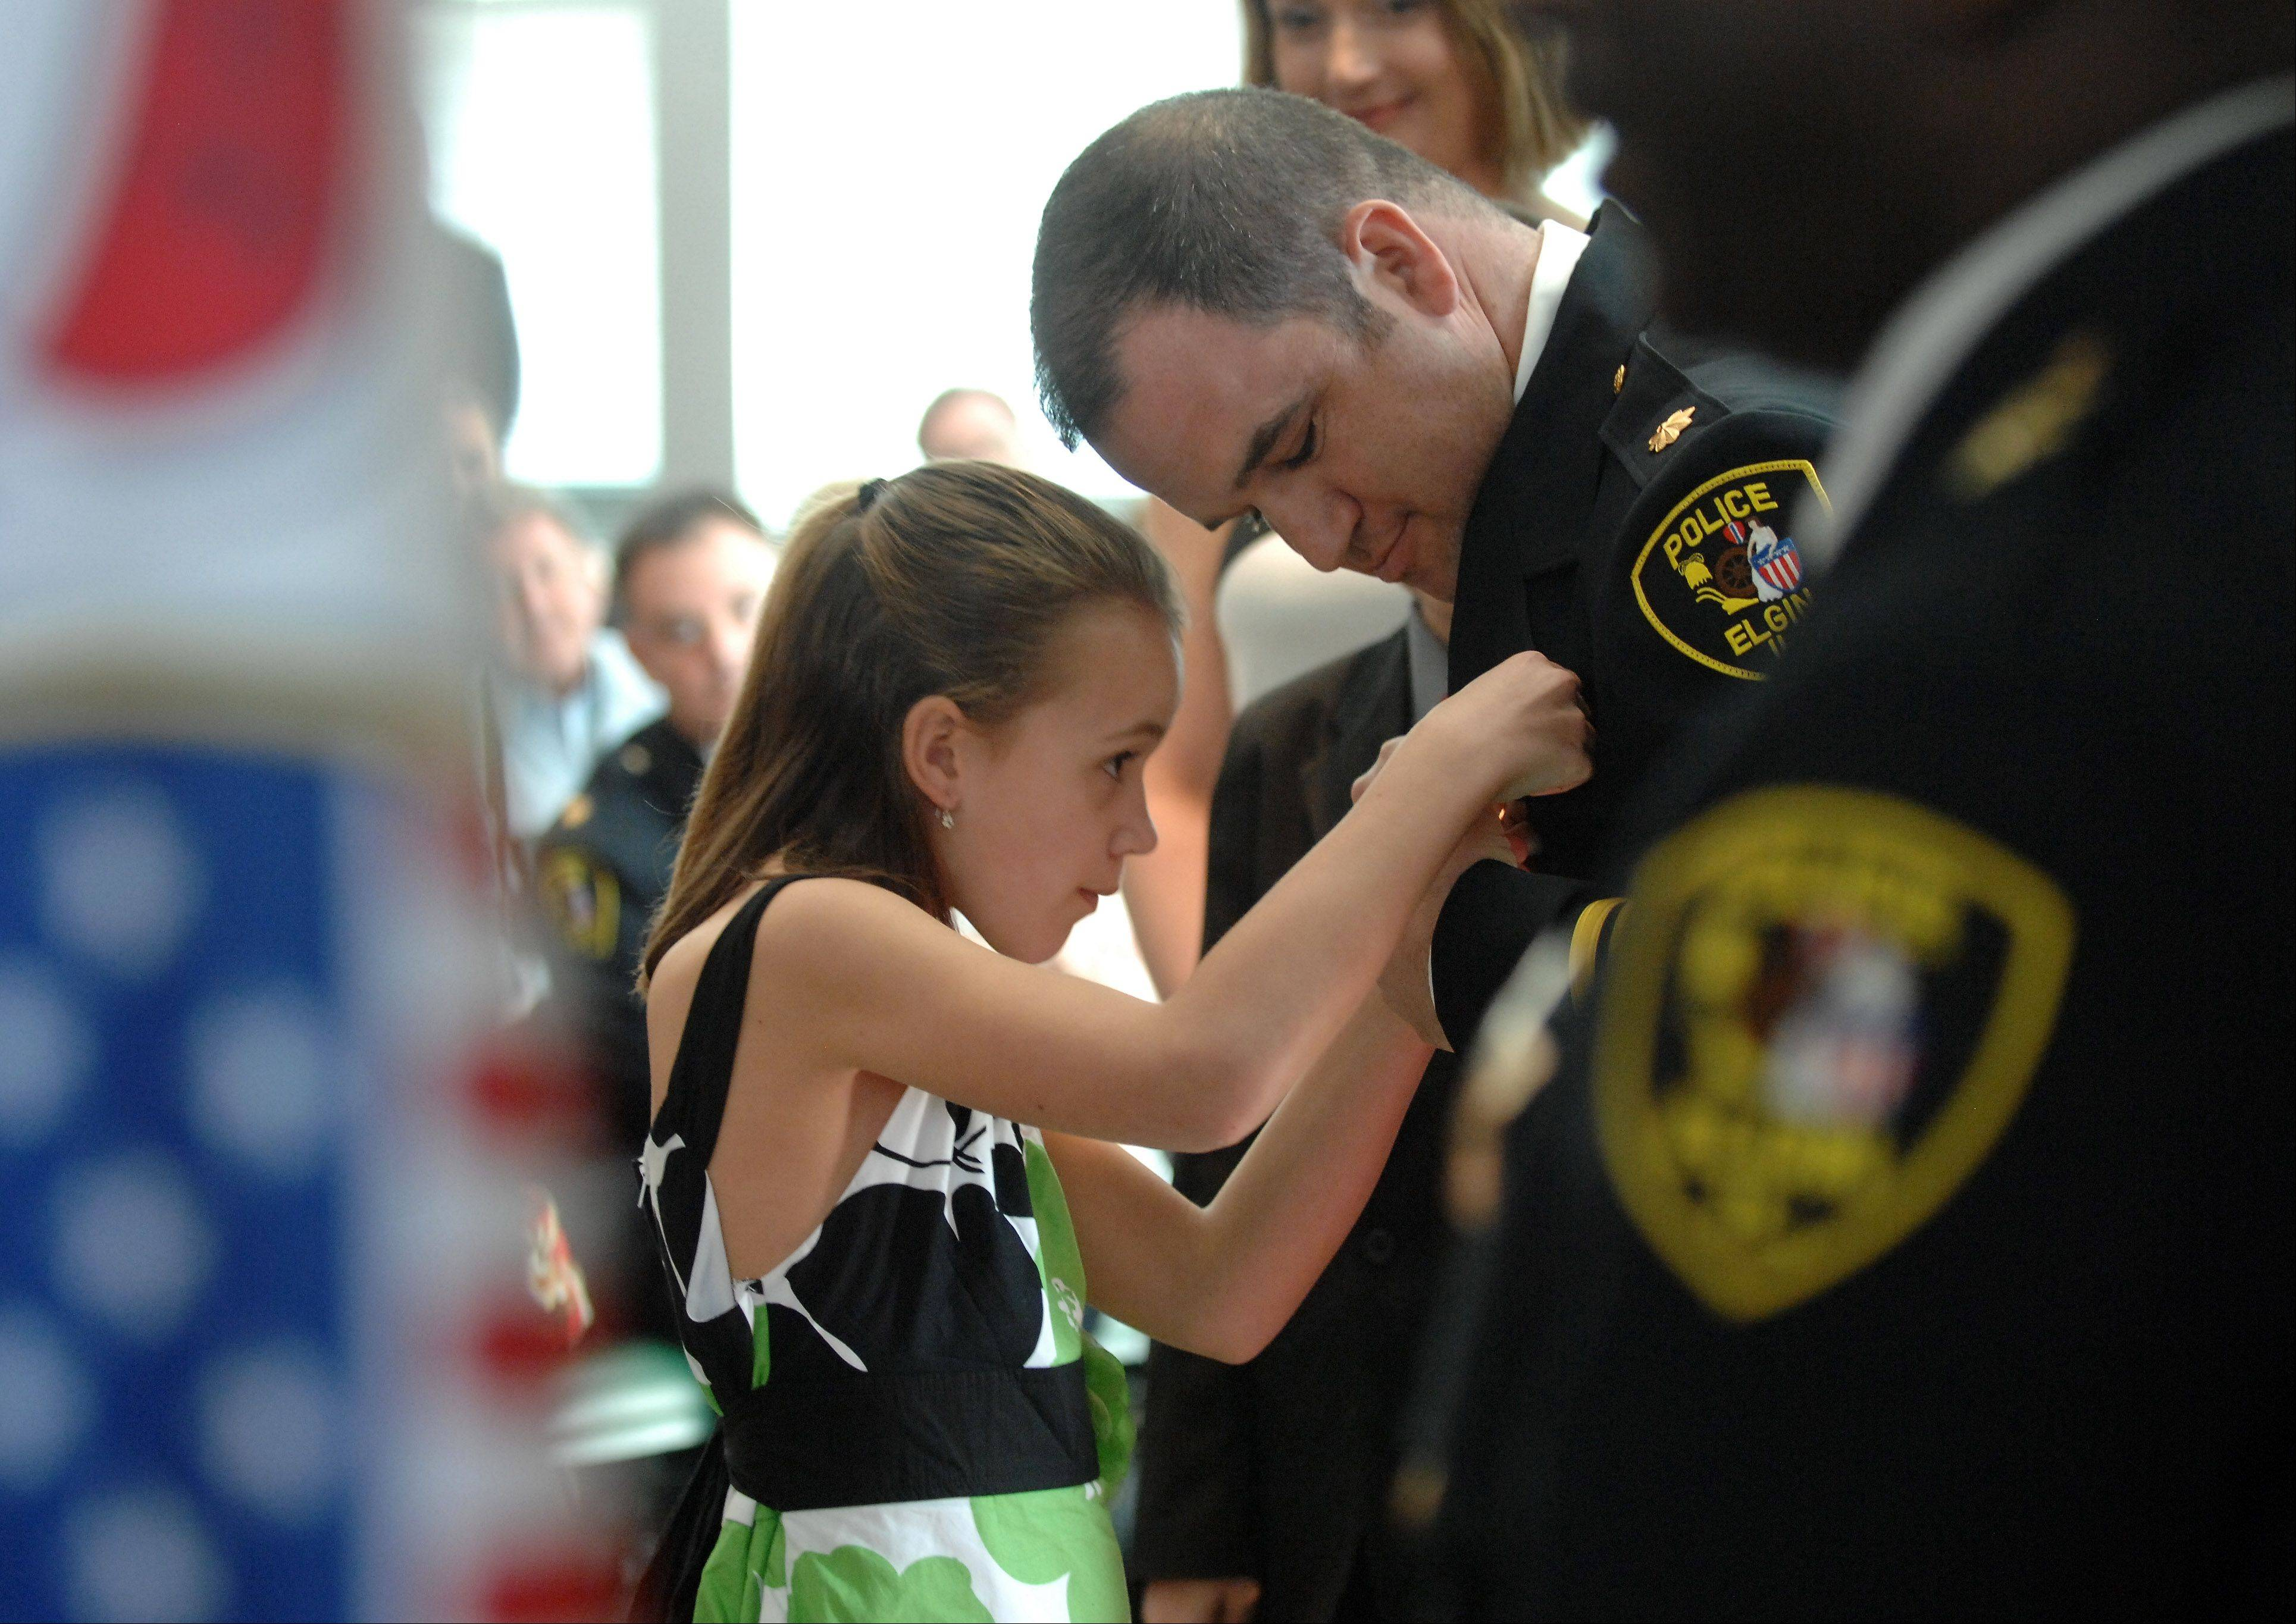 Newly sworn-in Commander Glenn Theriault watches as his daughter Katie, 9, pins on his new badge during a promotion and retirement ceremony for the Elgin Police Department Friday.